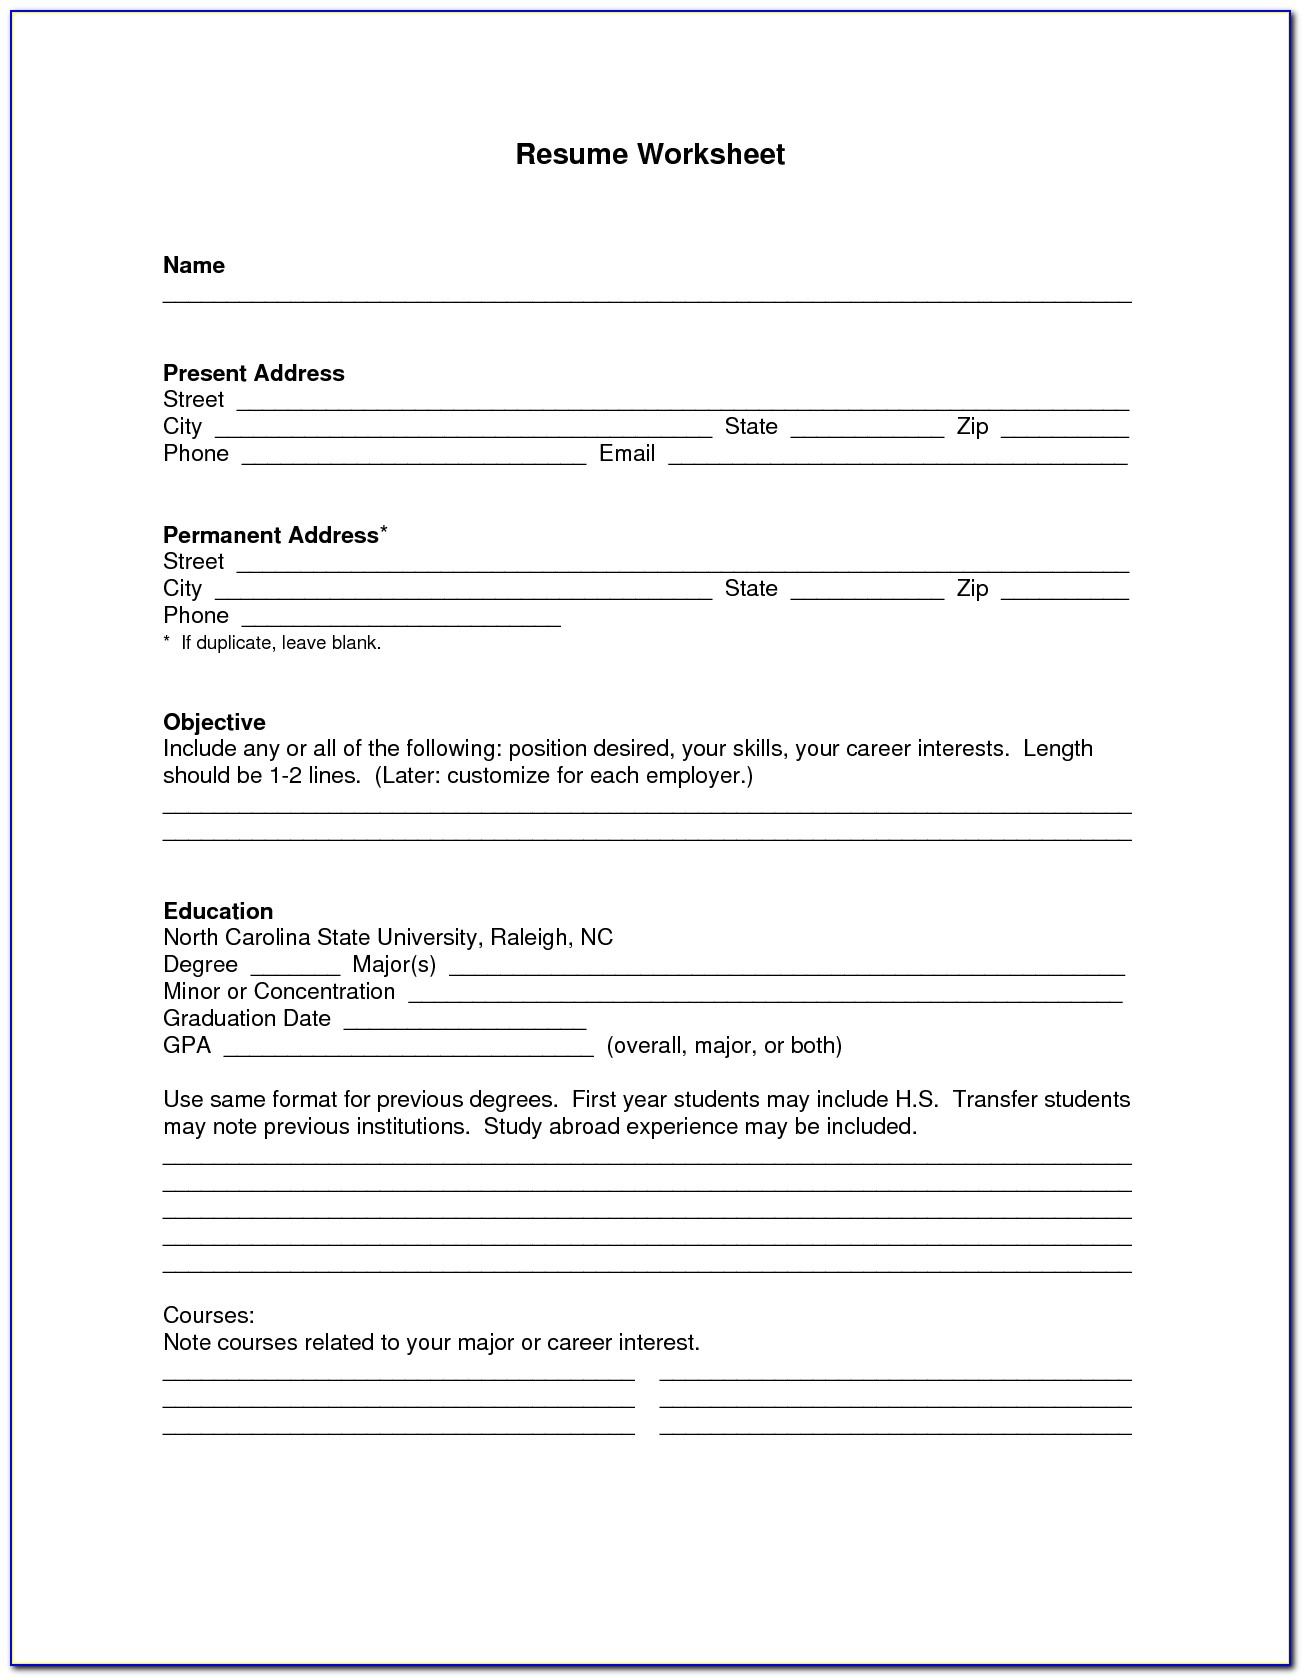 blank resume form for job application vincegray2014 pdf production assistant multiple Resume Resume For Job Application Pdf